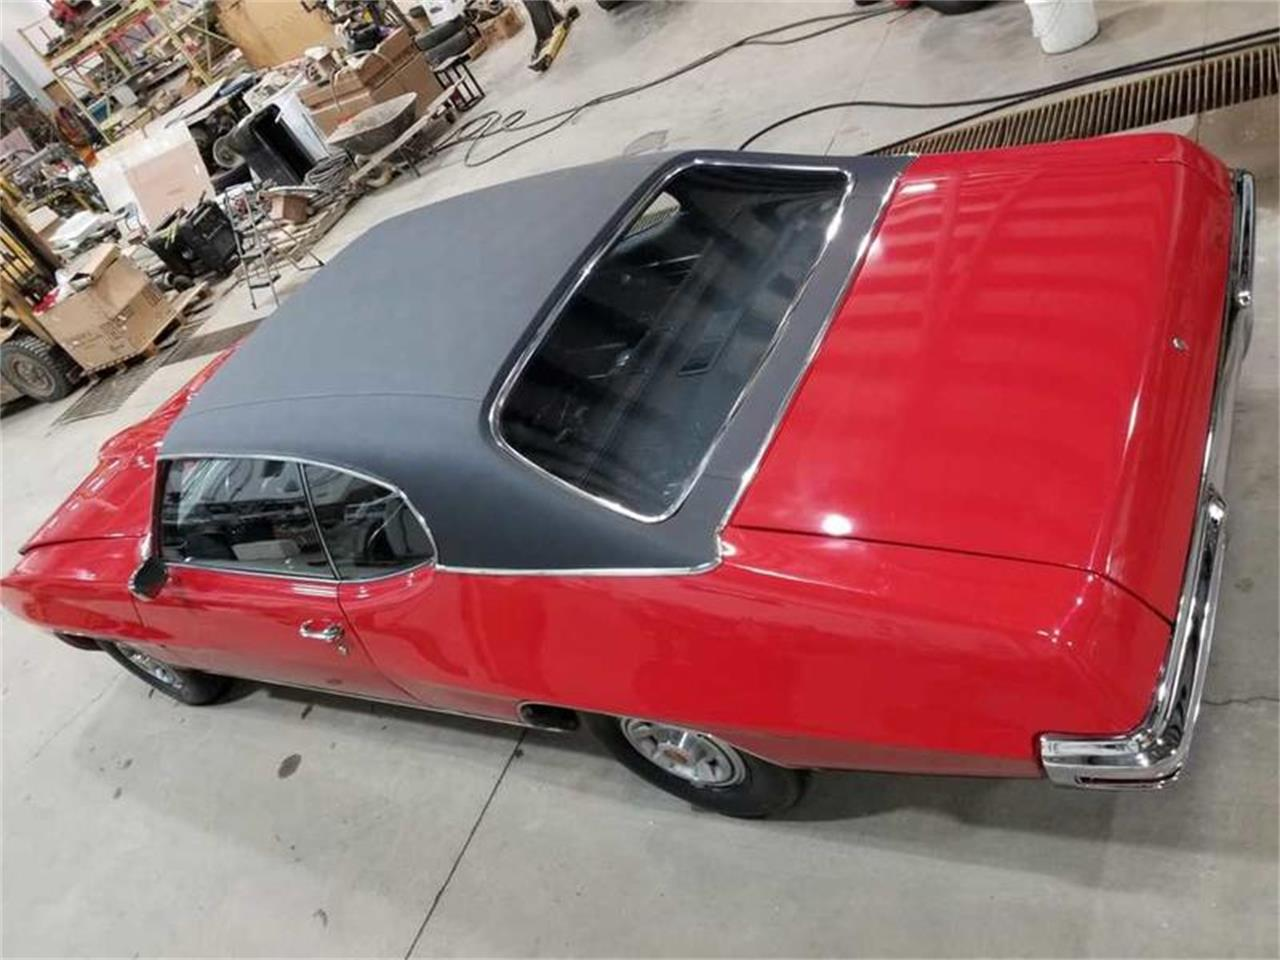 Large Picture of 1970 GTO located in DAVIDSON Saskatchewan Auction Vehicle - QCJL